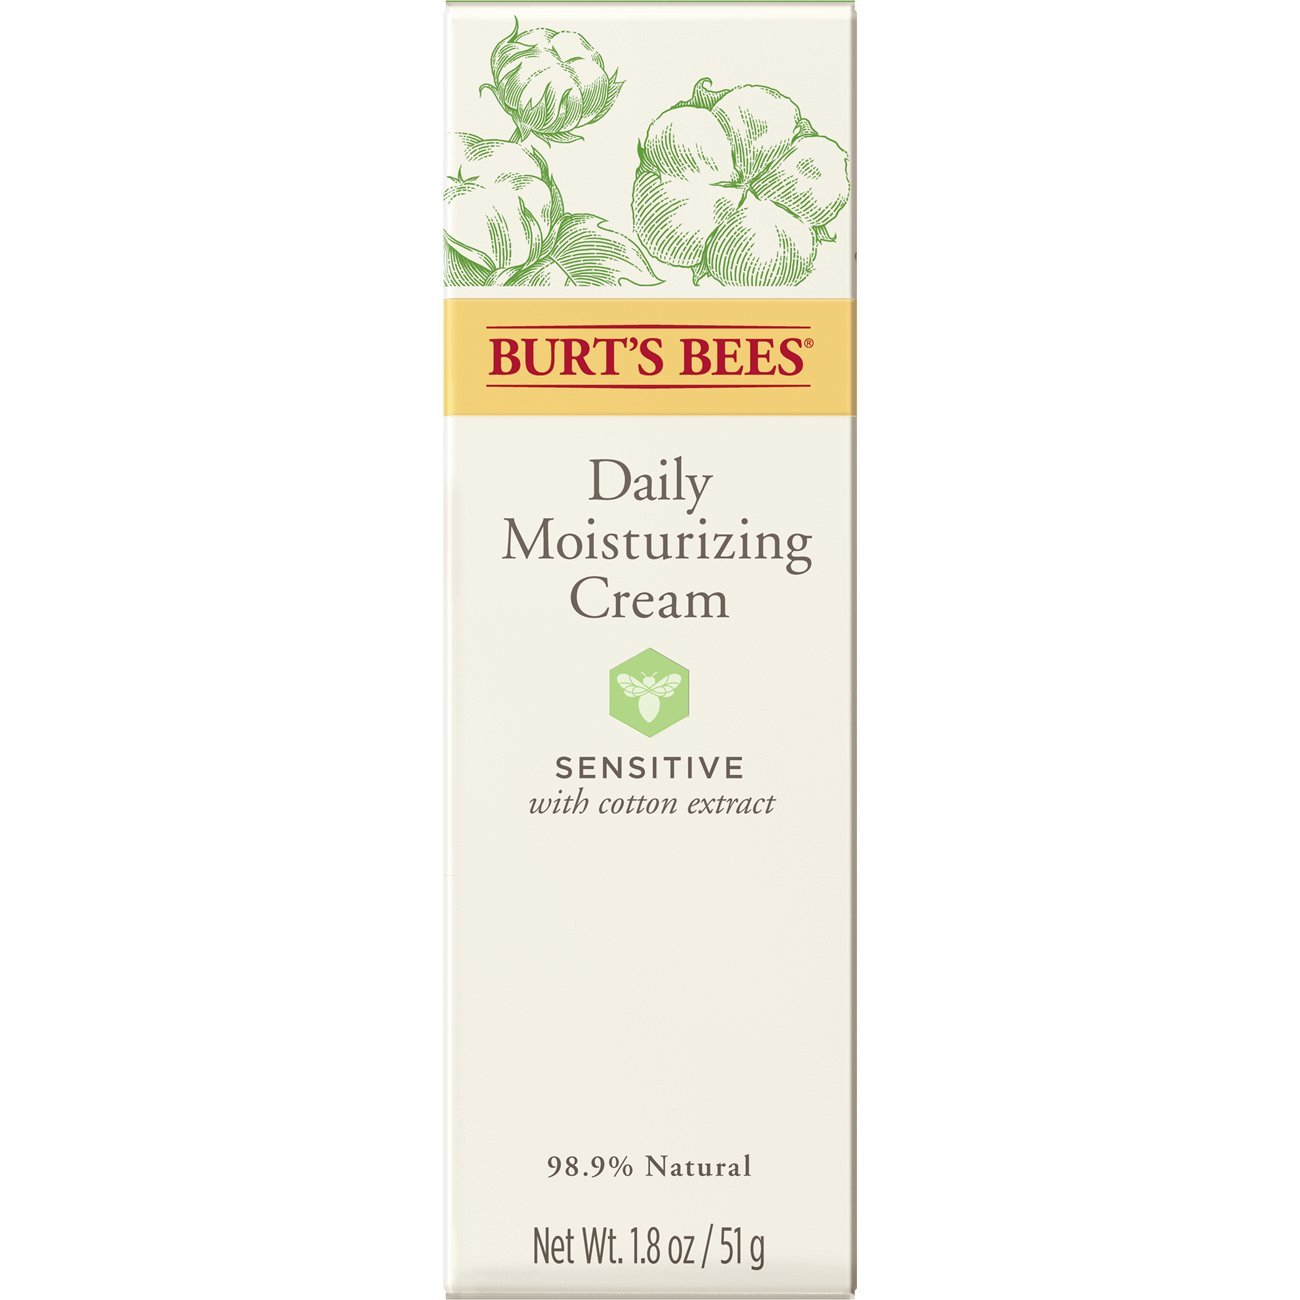 Burt's Bees Daily Face Moisturizer for Sensitive Skin, 1.8 Ounces by Burt's Bees (Image #11)